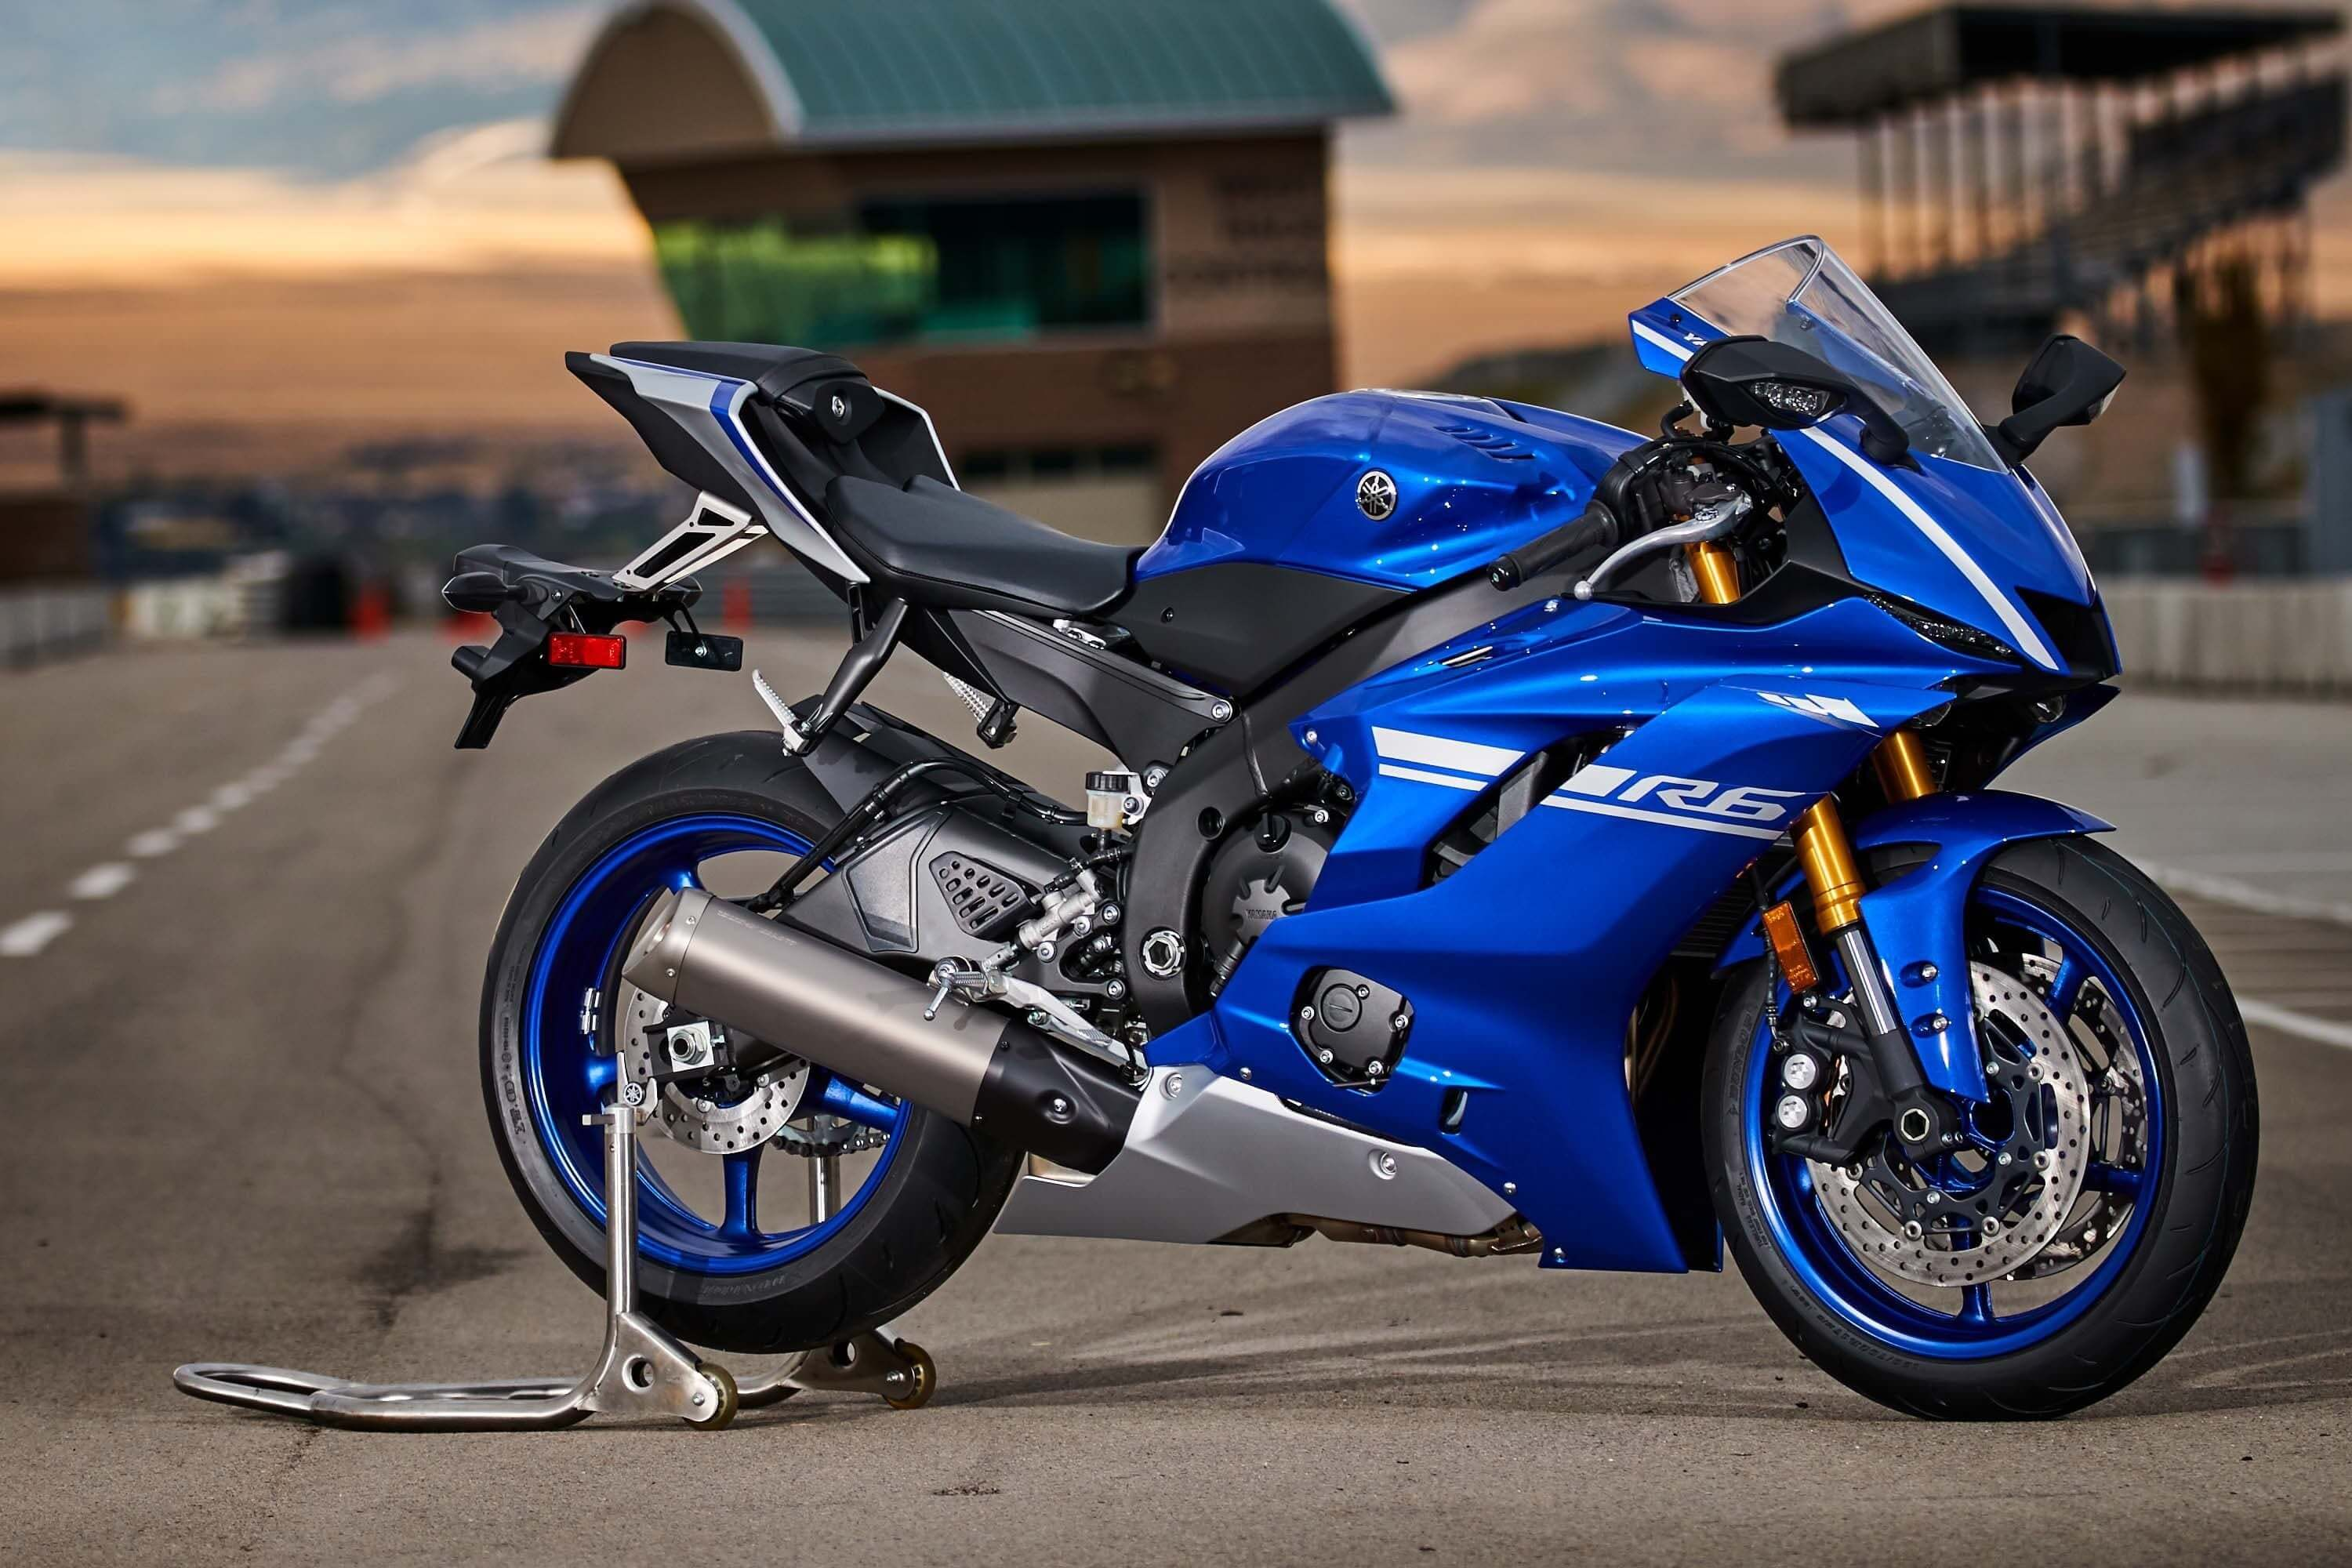 YZF-R6 Upcoming 2020 Yamaha Motorcycles With Latest Models